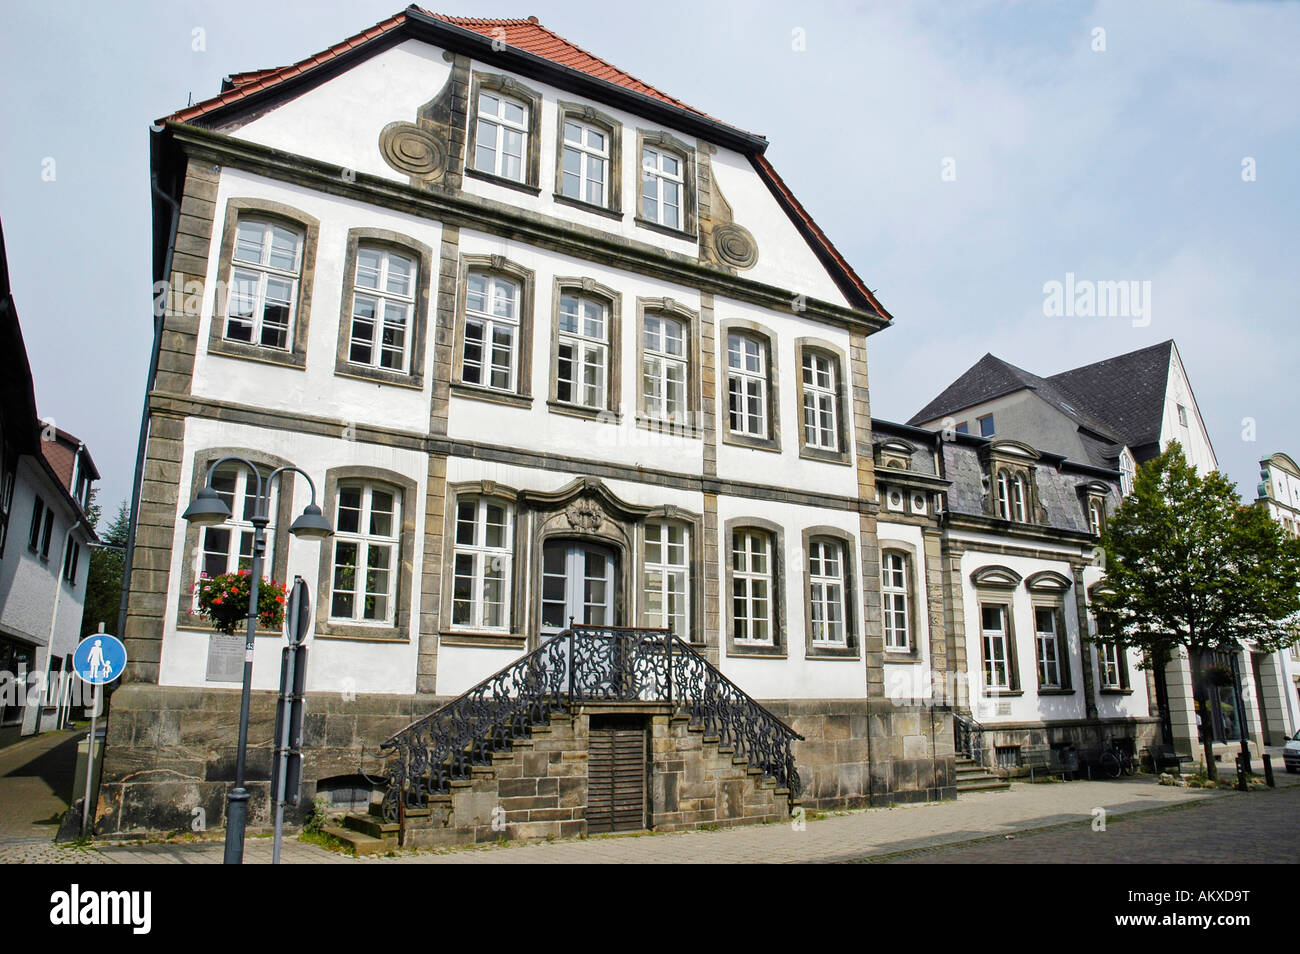 Baroque townhouse, Horn-Bad Meinberg, North Rhine-Westphalia, Germany - Stock Image